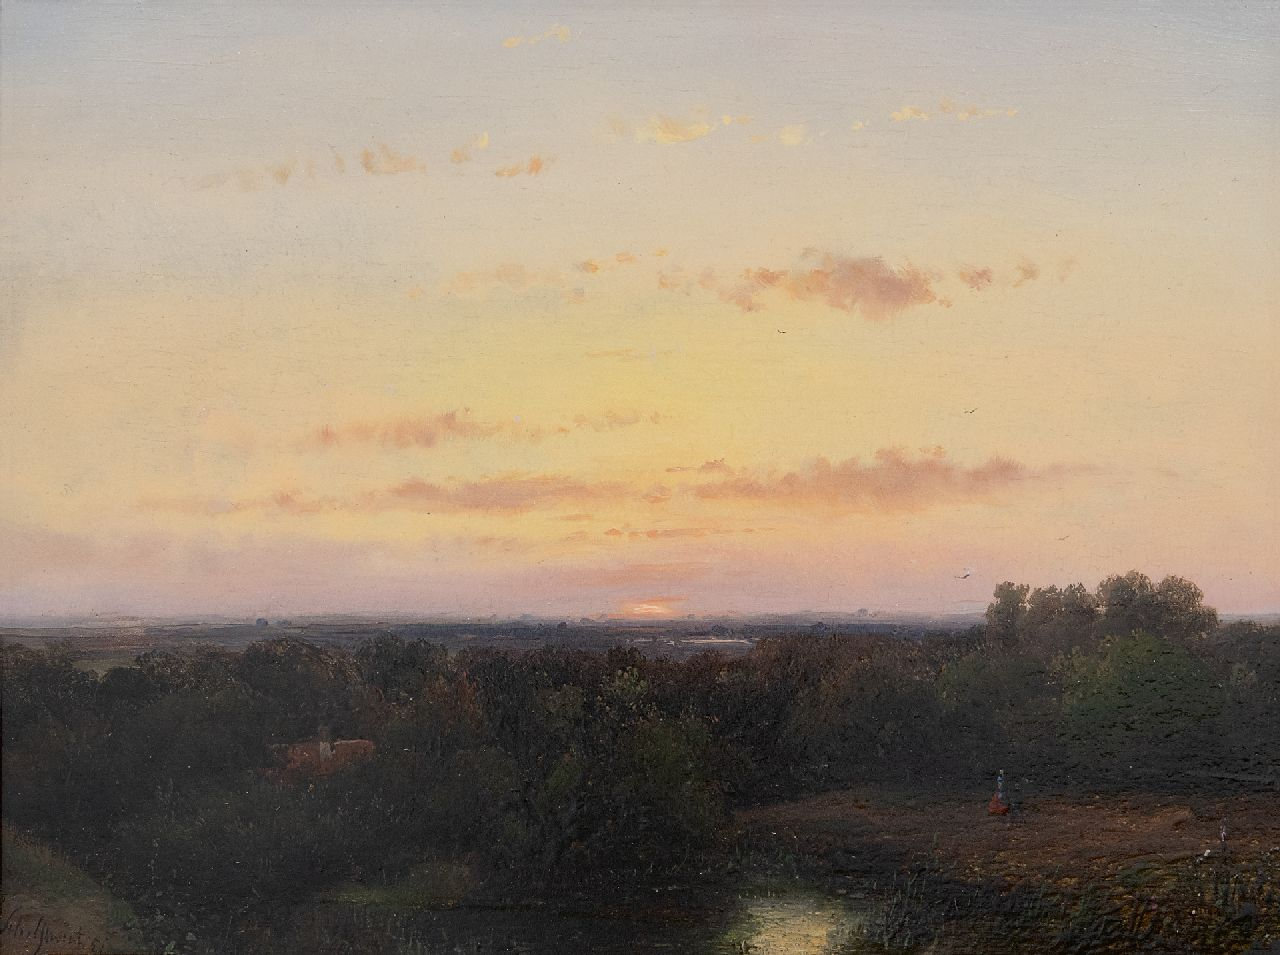 Schelfhout A.  | Andreas Schelfhout | Paintings offered for sale | Panoramic landscape at sunset, oil on panel 21.8 x 29.1 cm, signed l.l. and dated '51